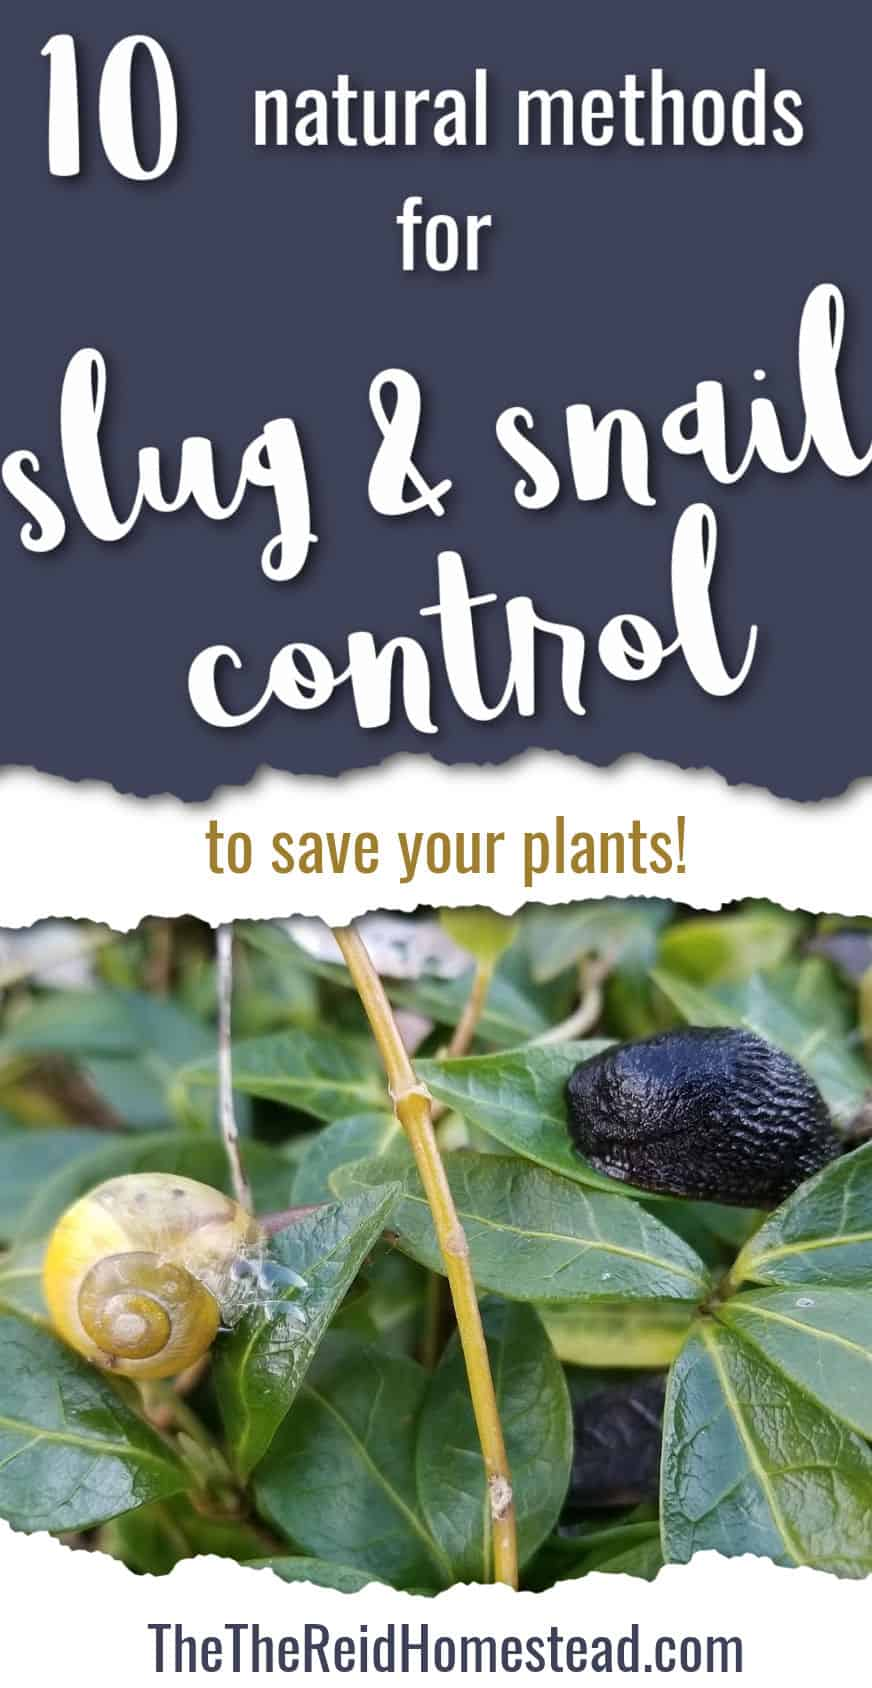 photo of a snail and slug on a vinca plant with text overlay 10 natural methods for Slug and Snail Control